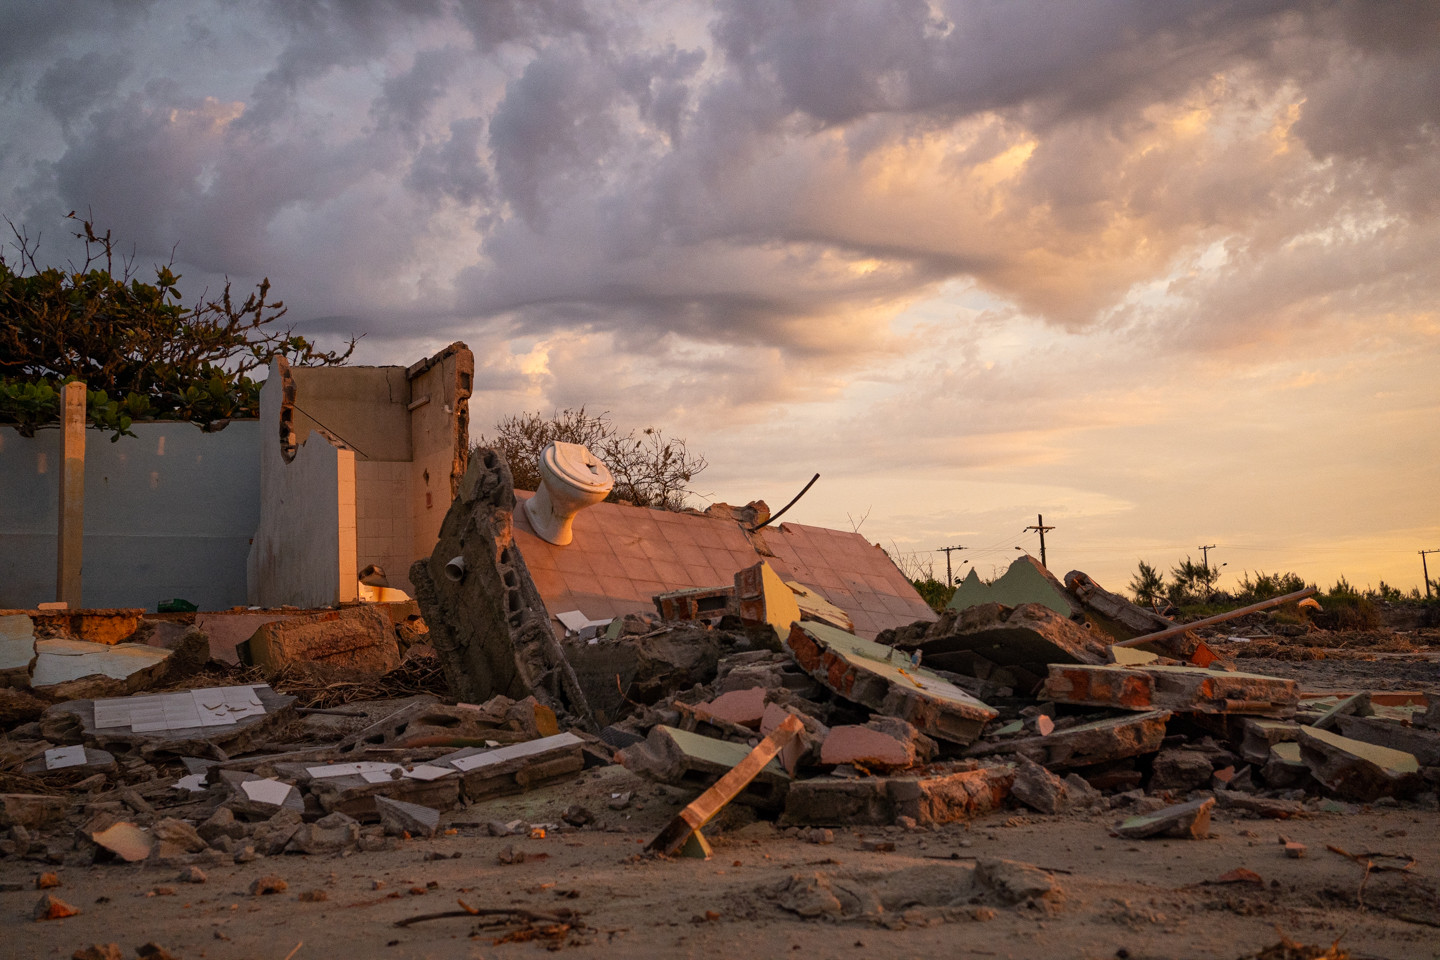 A destroyed house is seen on East beach in Ilha Comprida, Sao Paulo state, Brazil, February 19, 2020.